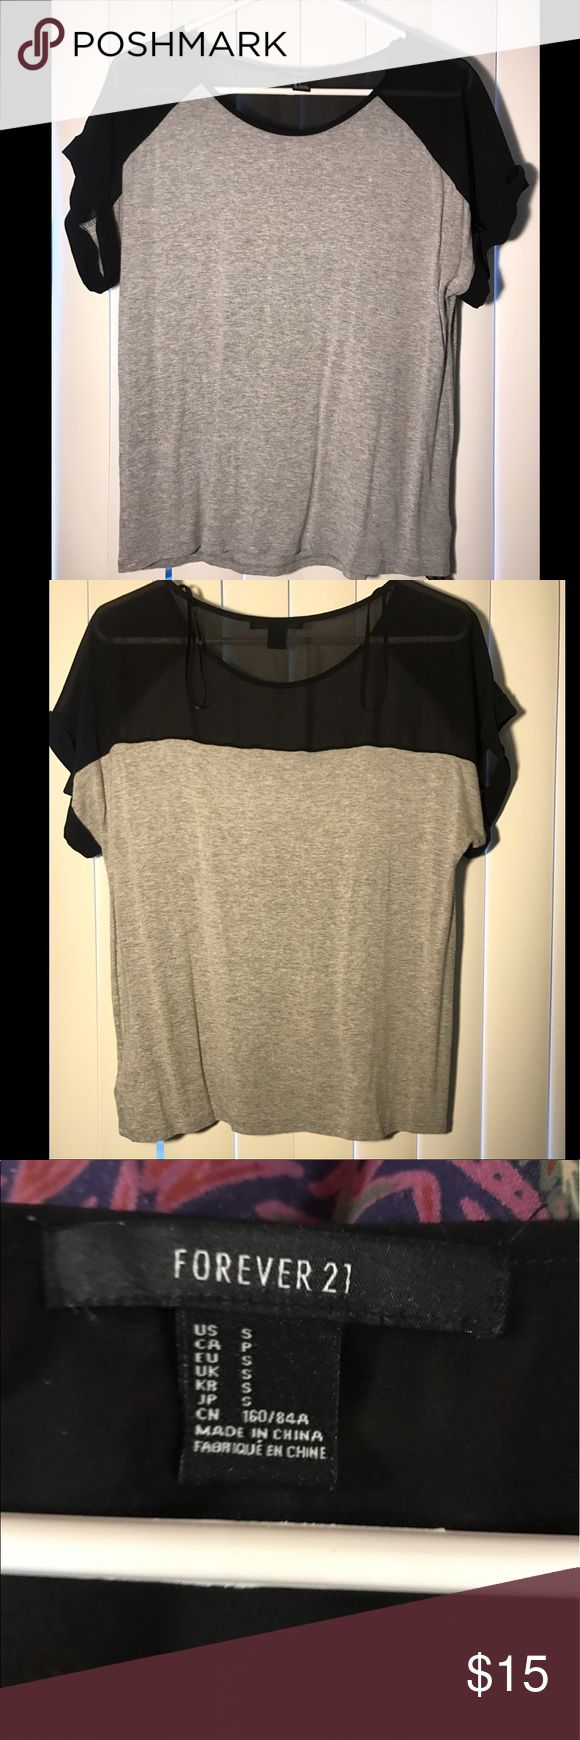 "Sheer shoulder Forever21 top Super casual yet fun! Size small but fits like a medium, I am 5'8"" and 130 lbs and it is loose on me. Tops Tees - Short Sleeve"